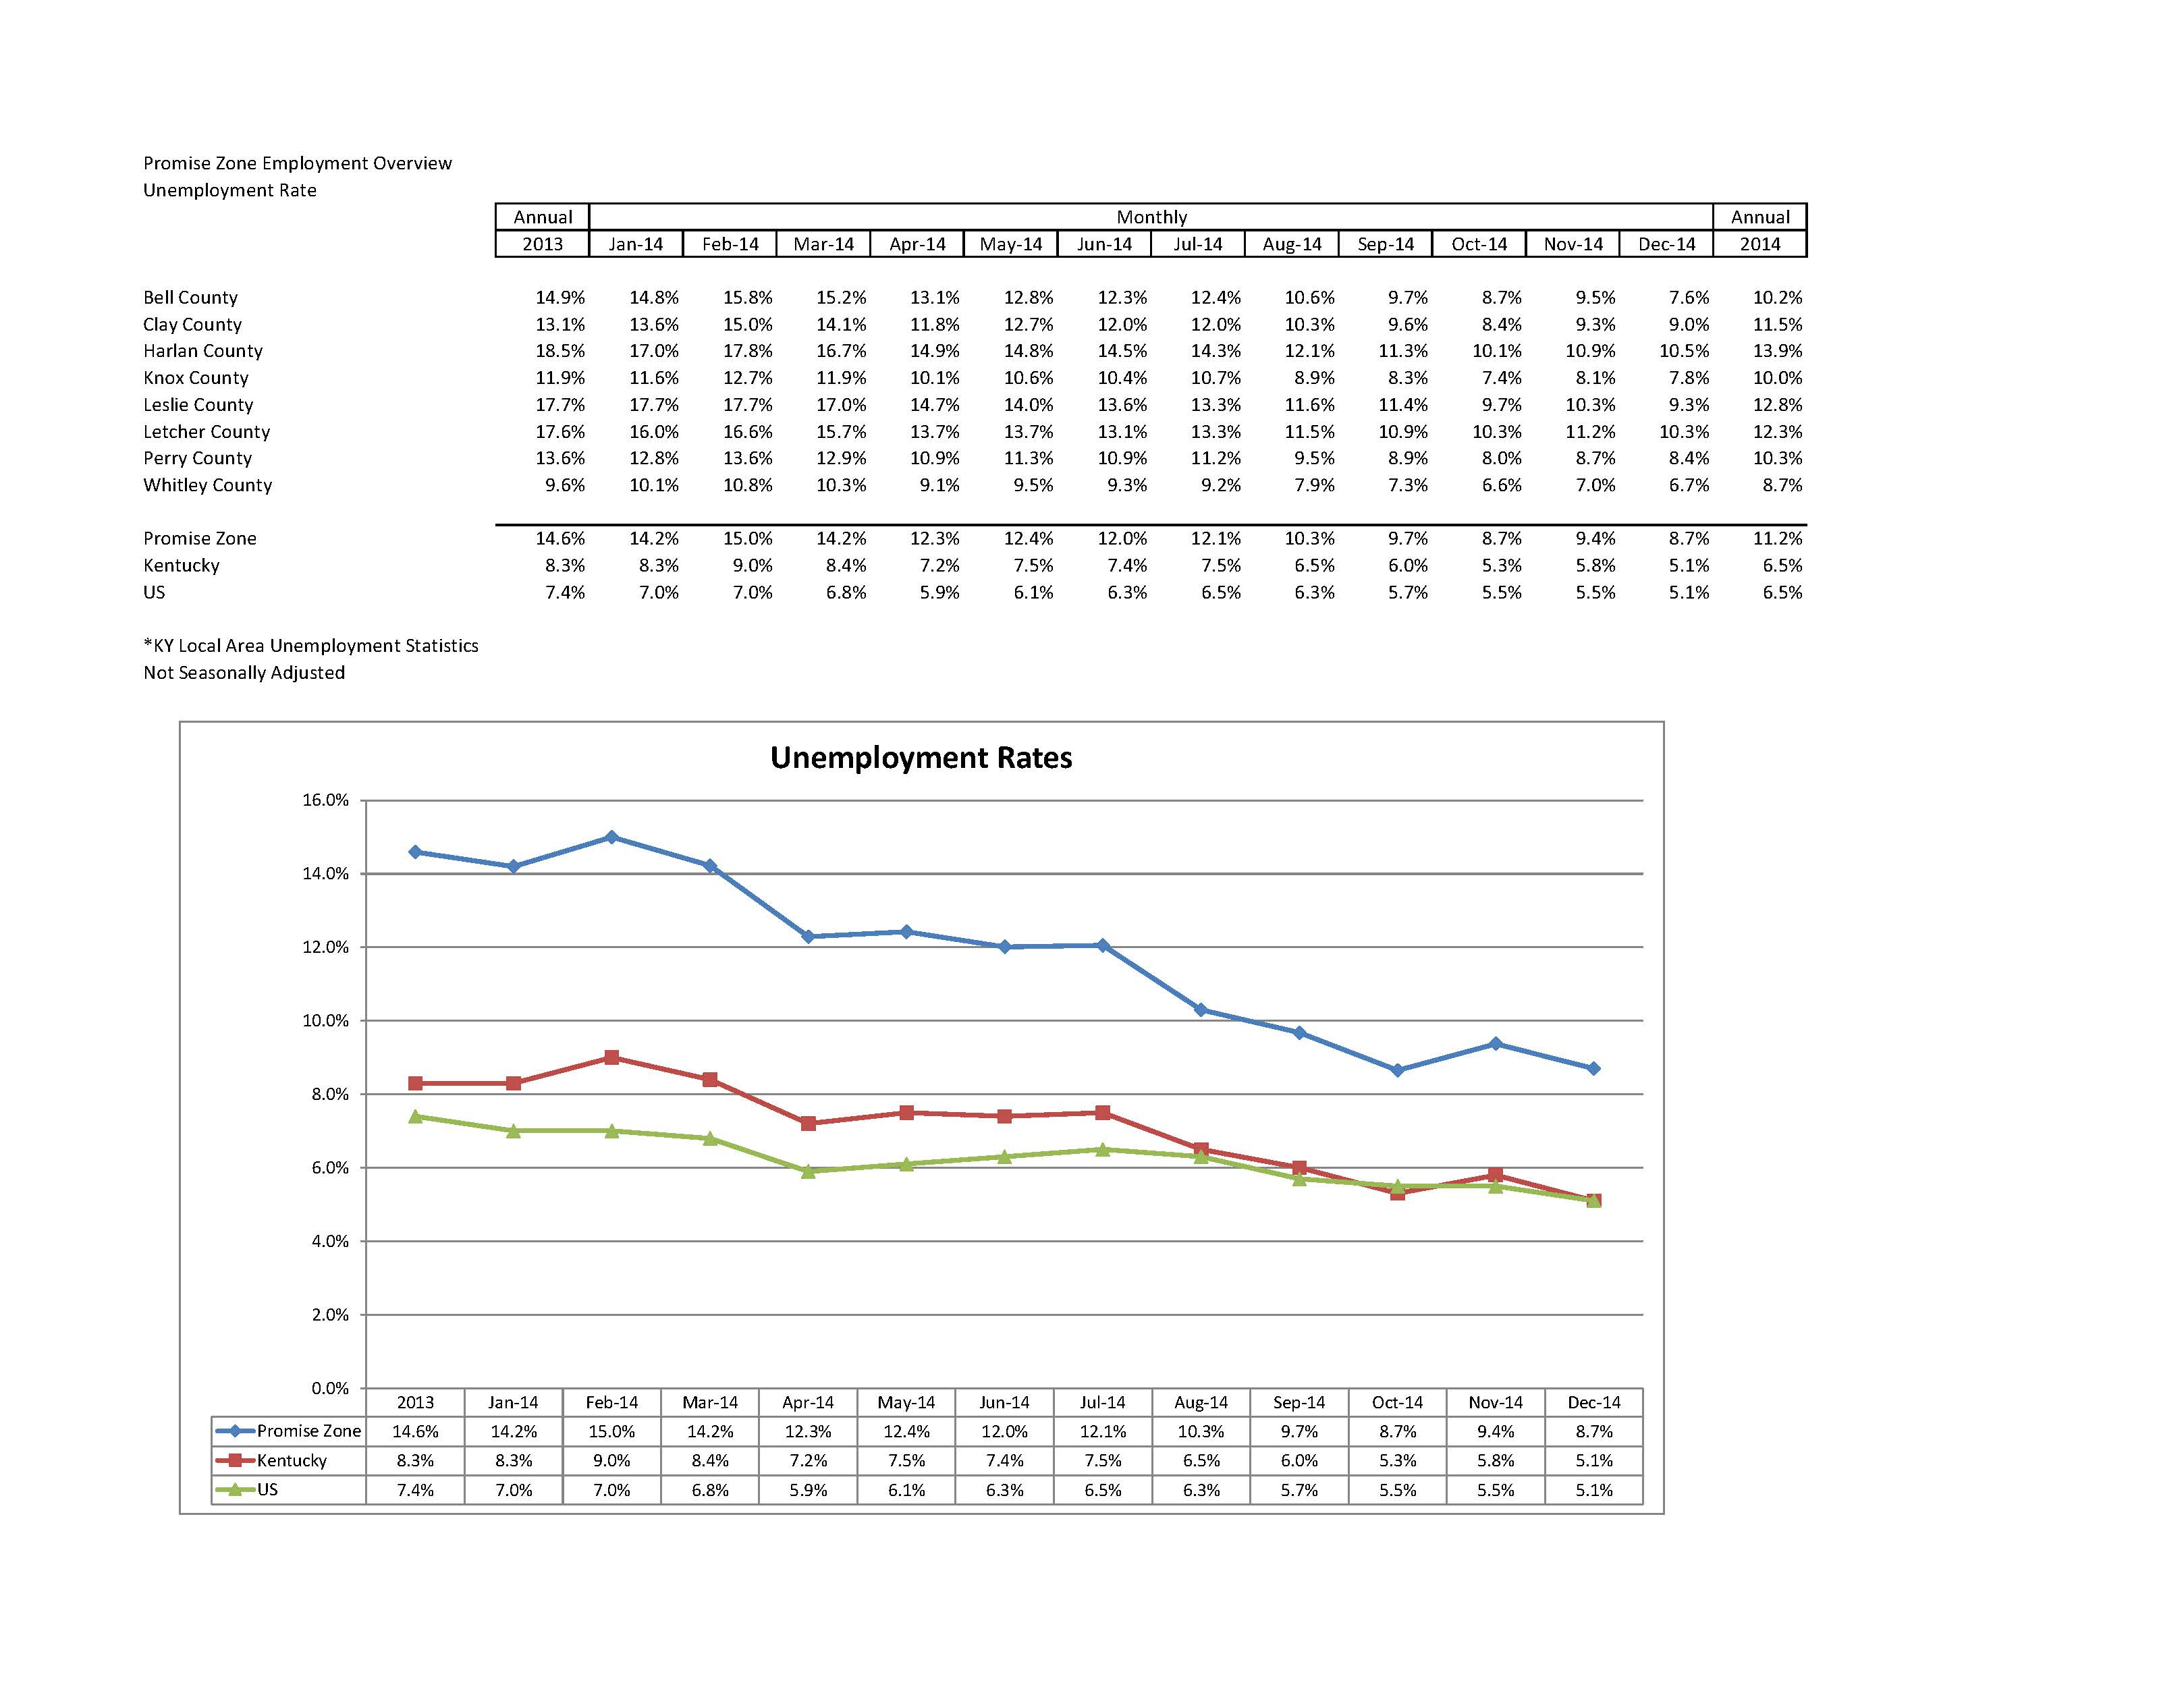 Copy of PZ Unemployment Rate 2014